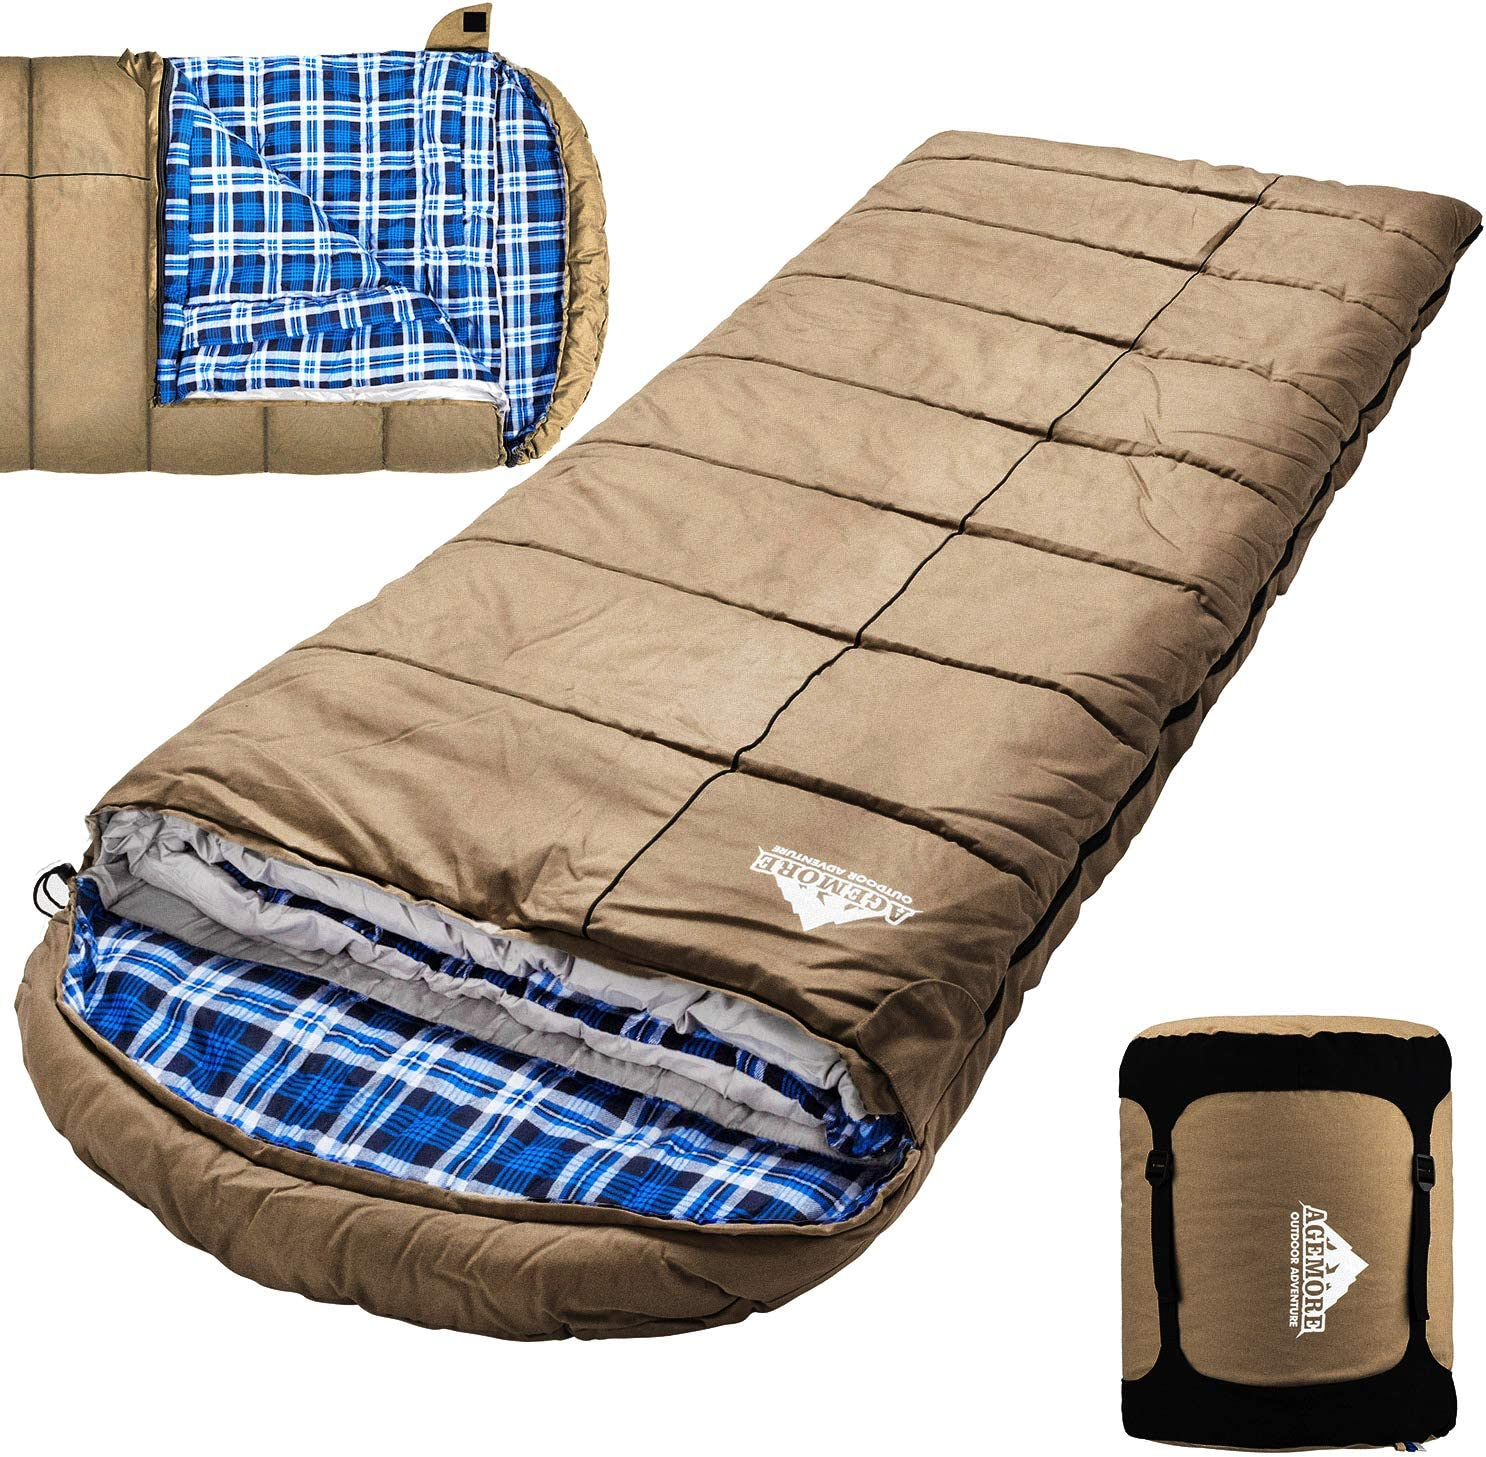 Hunting Traveling and Camping Particularly in Cold Winter Outdoor with Removable Flannel Liner and Free Compression Sack for Big and Tall Adults Winter 0 Degree Canvas Sleeping Bag for Fishing